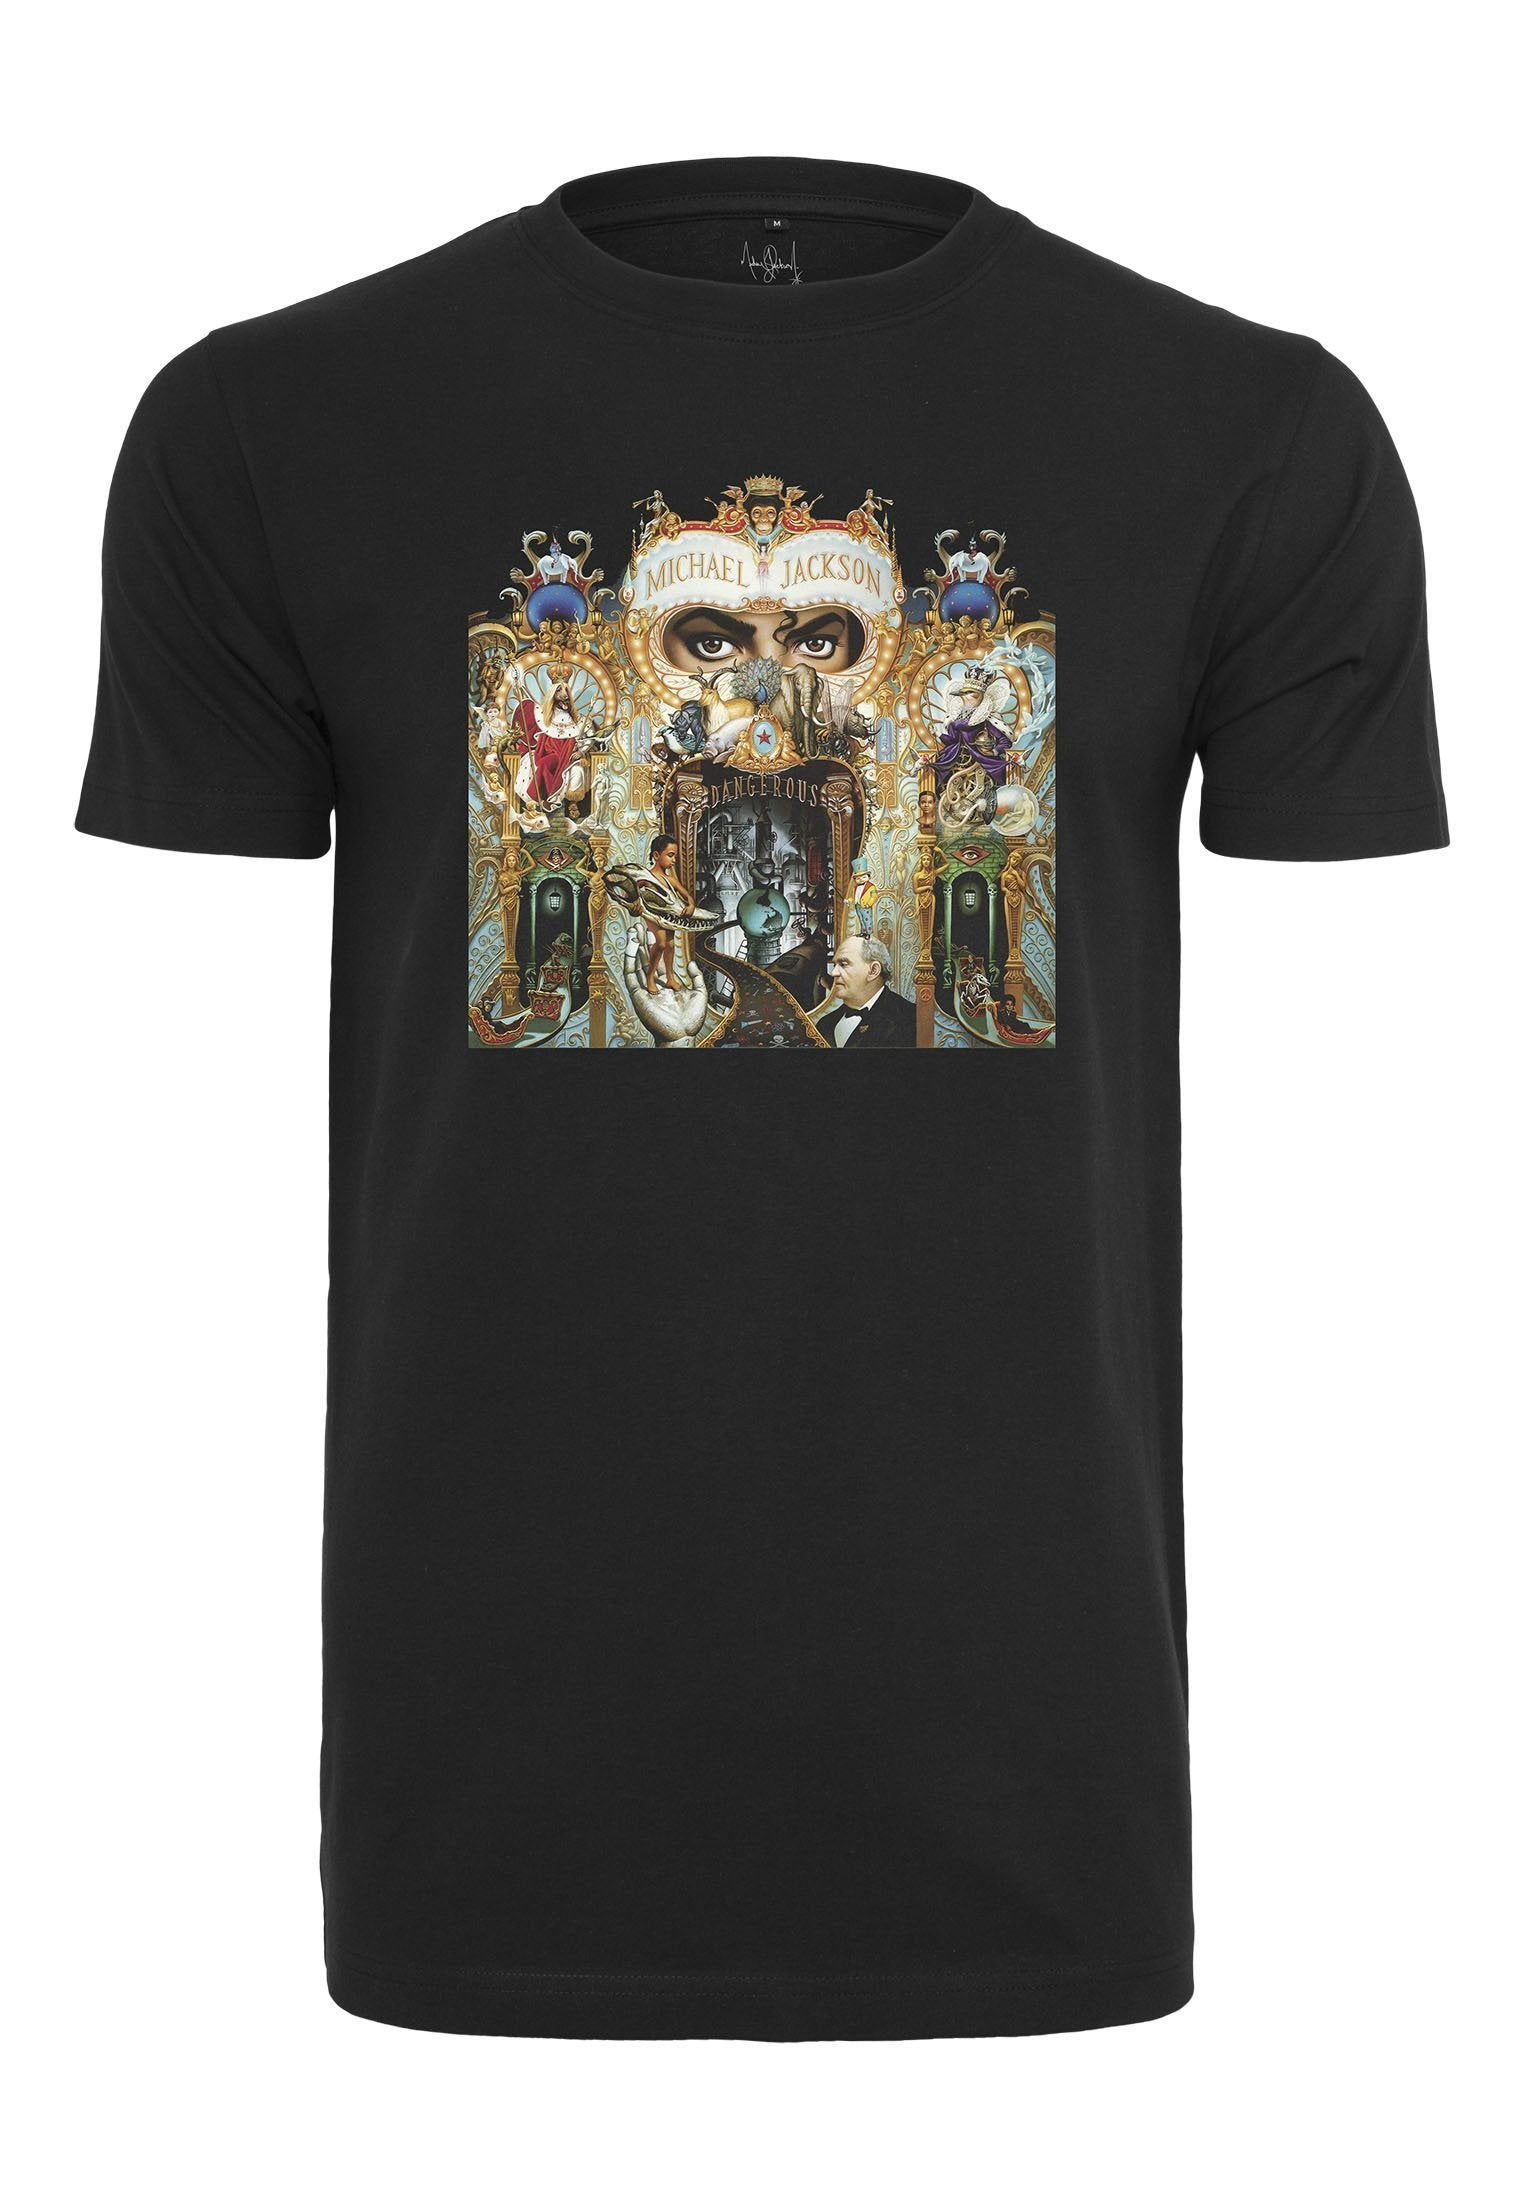 "Michael Jackson Dangerous T-Shirt - Michael Jackson Dangerous T-Shirt 100% Bomuld/Cotton - Style No. MC437 - Farve/Color: Black Fans of Michael Jackson will rejoice, wearing this eye-catching tee. Present proudly the cover of the album Dangerous"" on your chest and show the world that you kn"